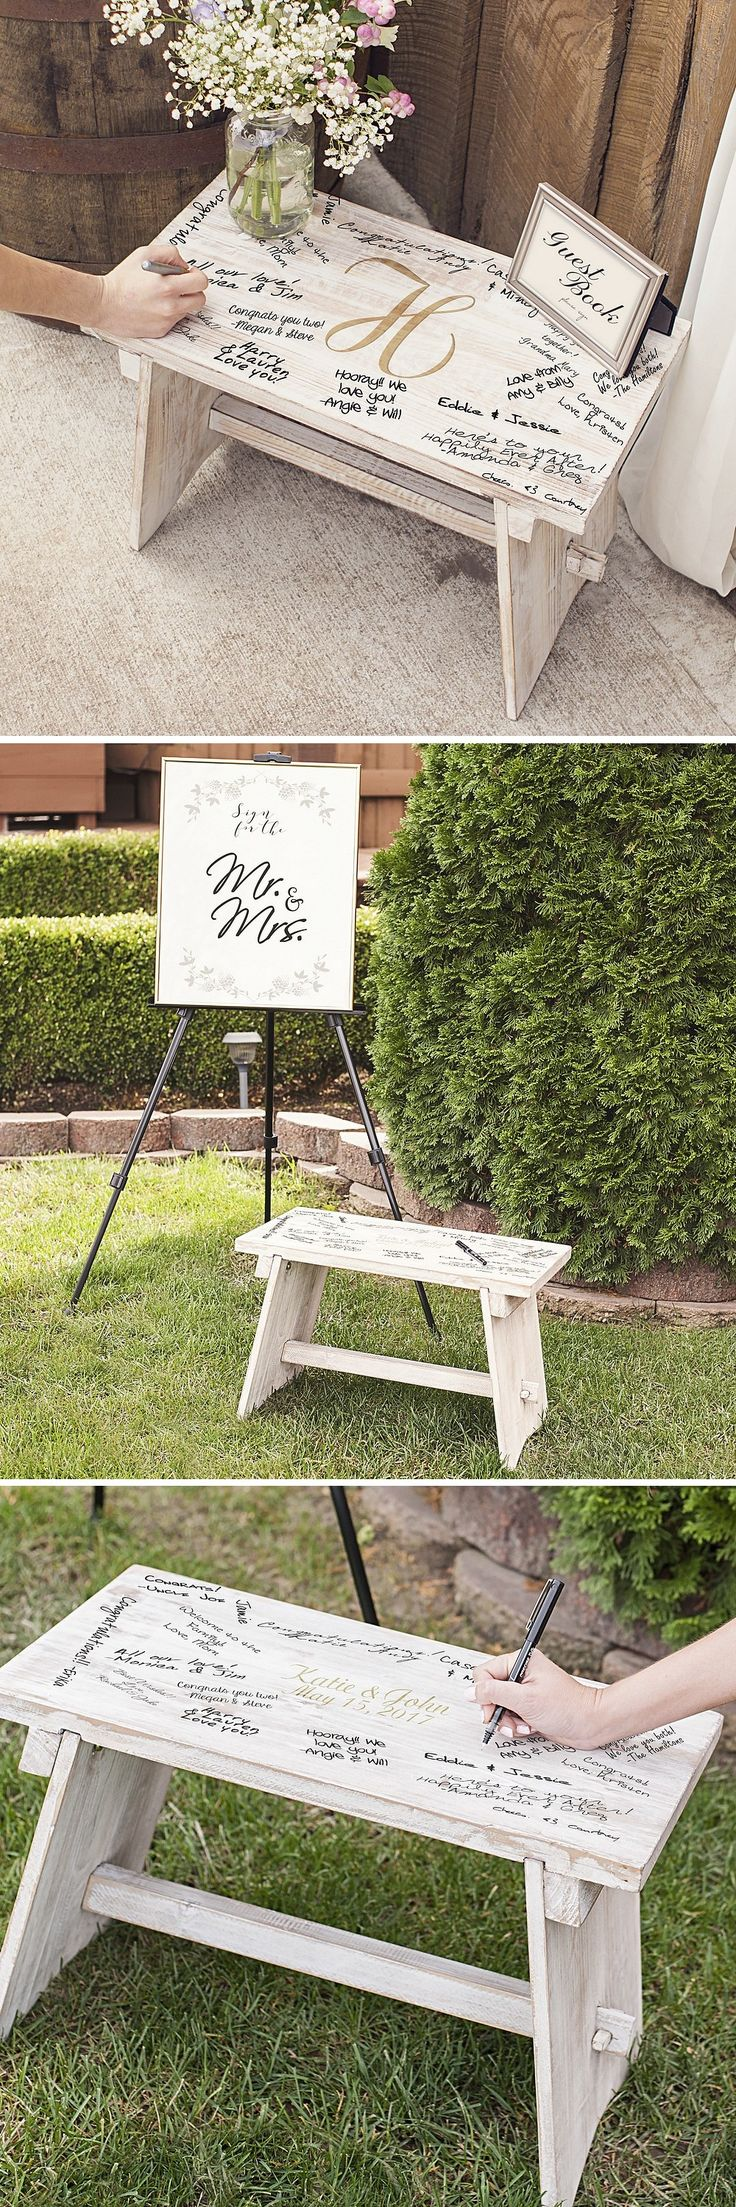 Inspired by an old farmhouse step stool, this decorative rustic antiqued wood step stool personalized with 2 lines of custom print or a large single initial can be used as a guest book stand or as a stand-alone wedding guest book alternative to create a unique and interesting focal point at your rustic country, barn, or farm wedding. This stool can be ordered at http://myweddingreceptionideas.com/personalized-rustic-white-wood-guest-book-bench.asp